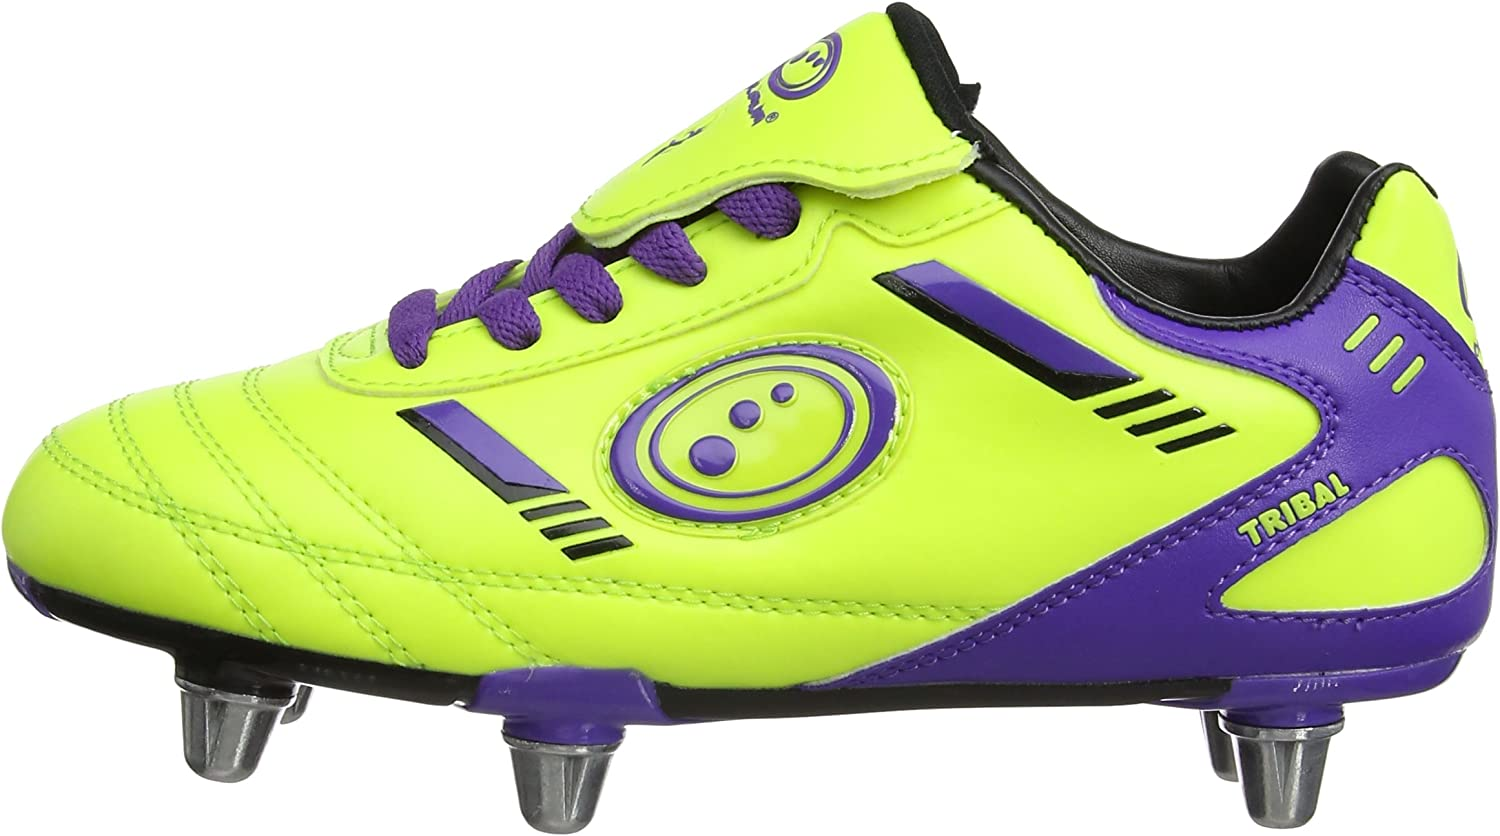 Chaussures de Rugby Gar/çon OPTIMUM Tribal Moulded Stud